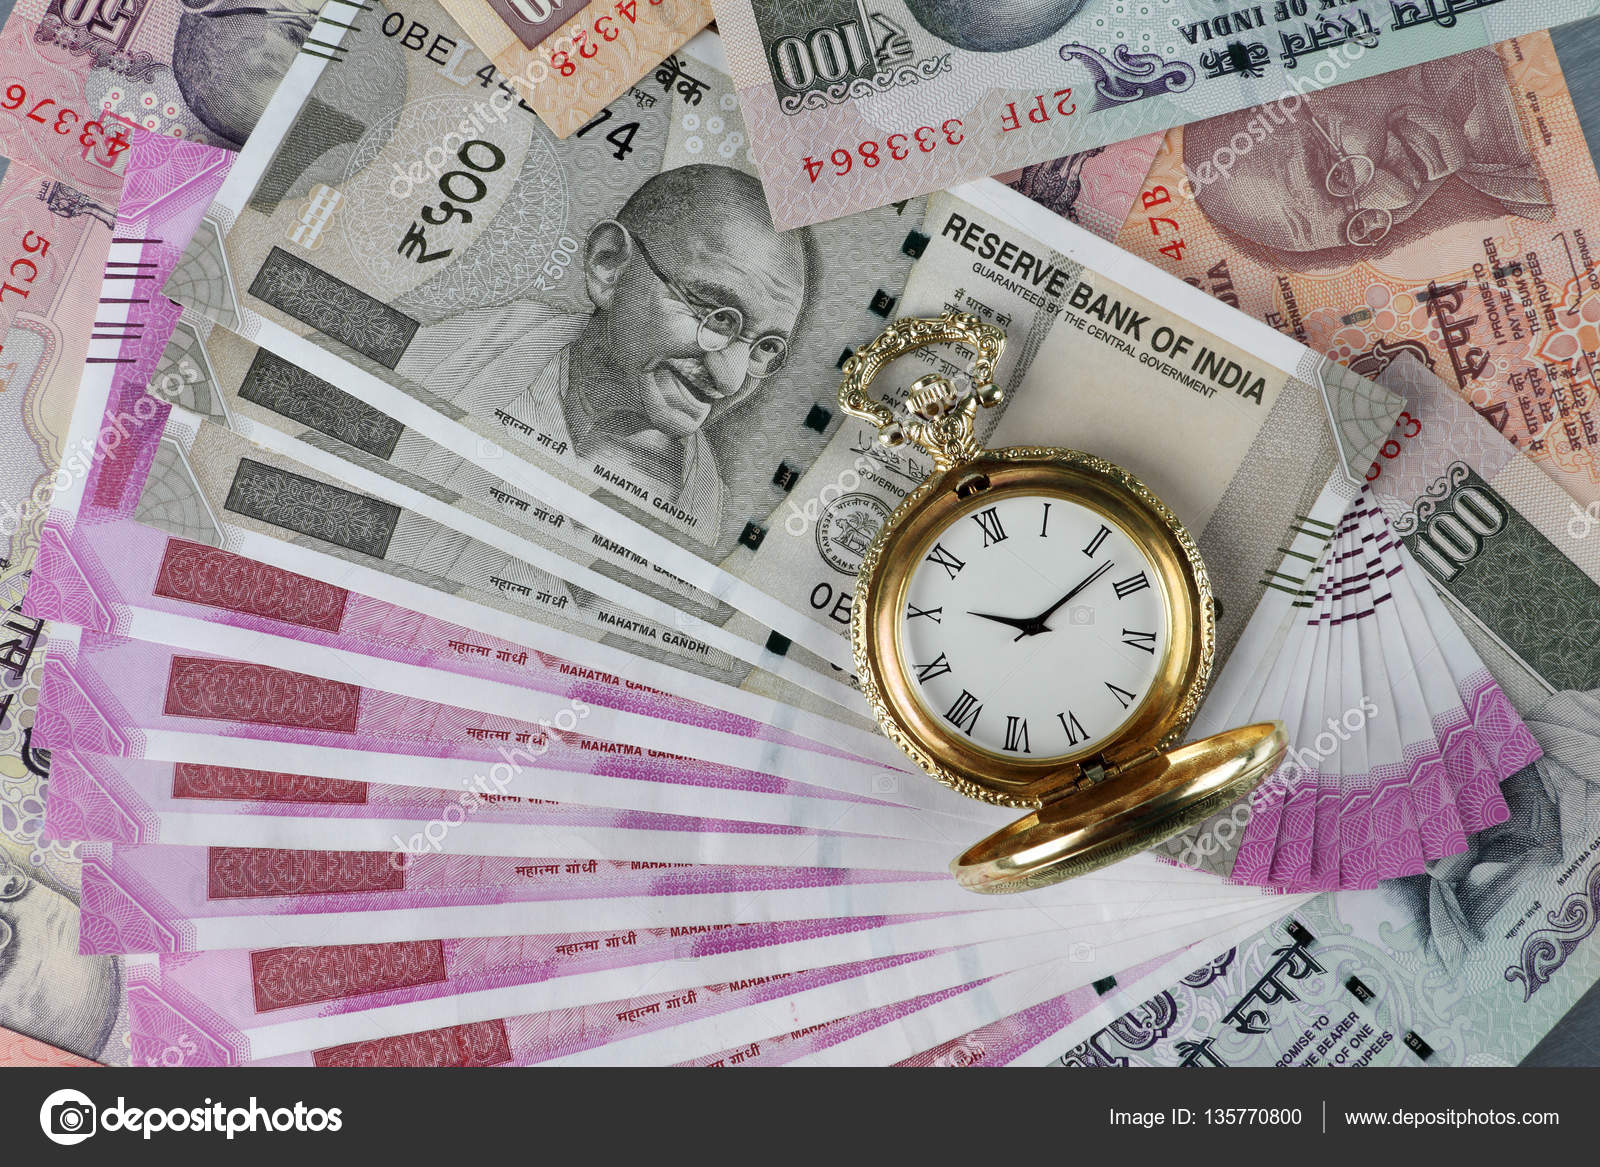 New Indian Rupees Currency With Antique Time Watch   Indian Money 1600x1167